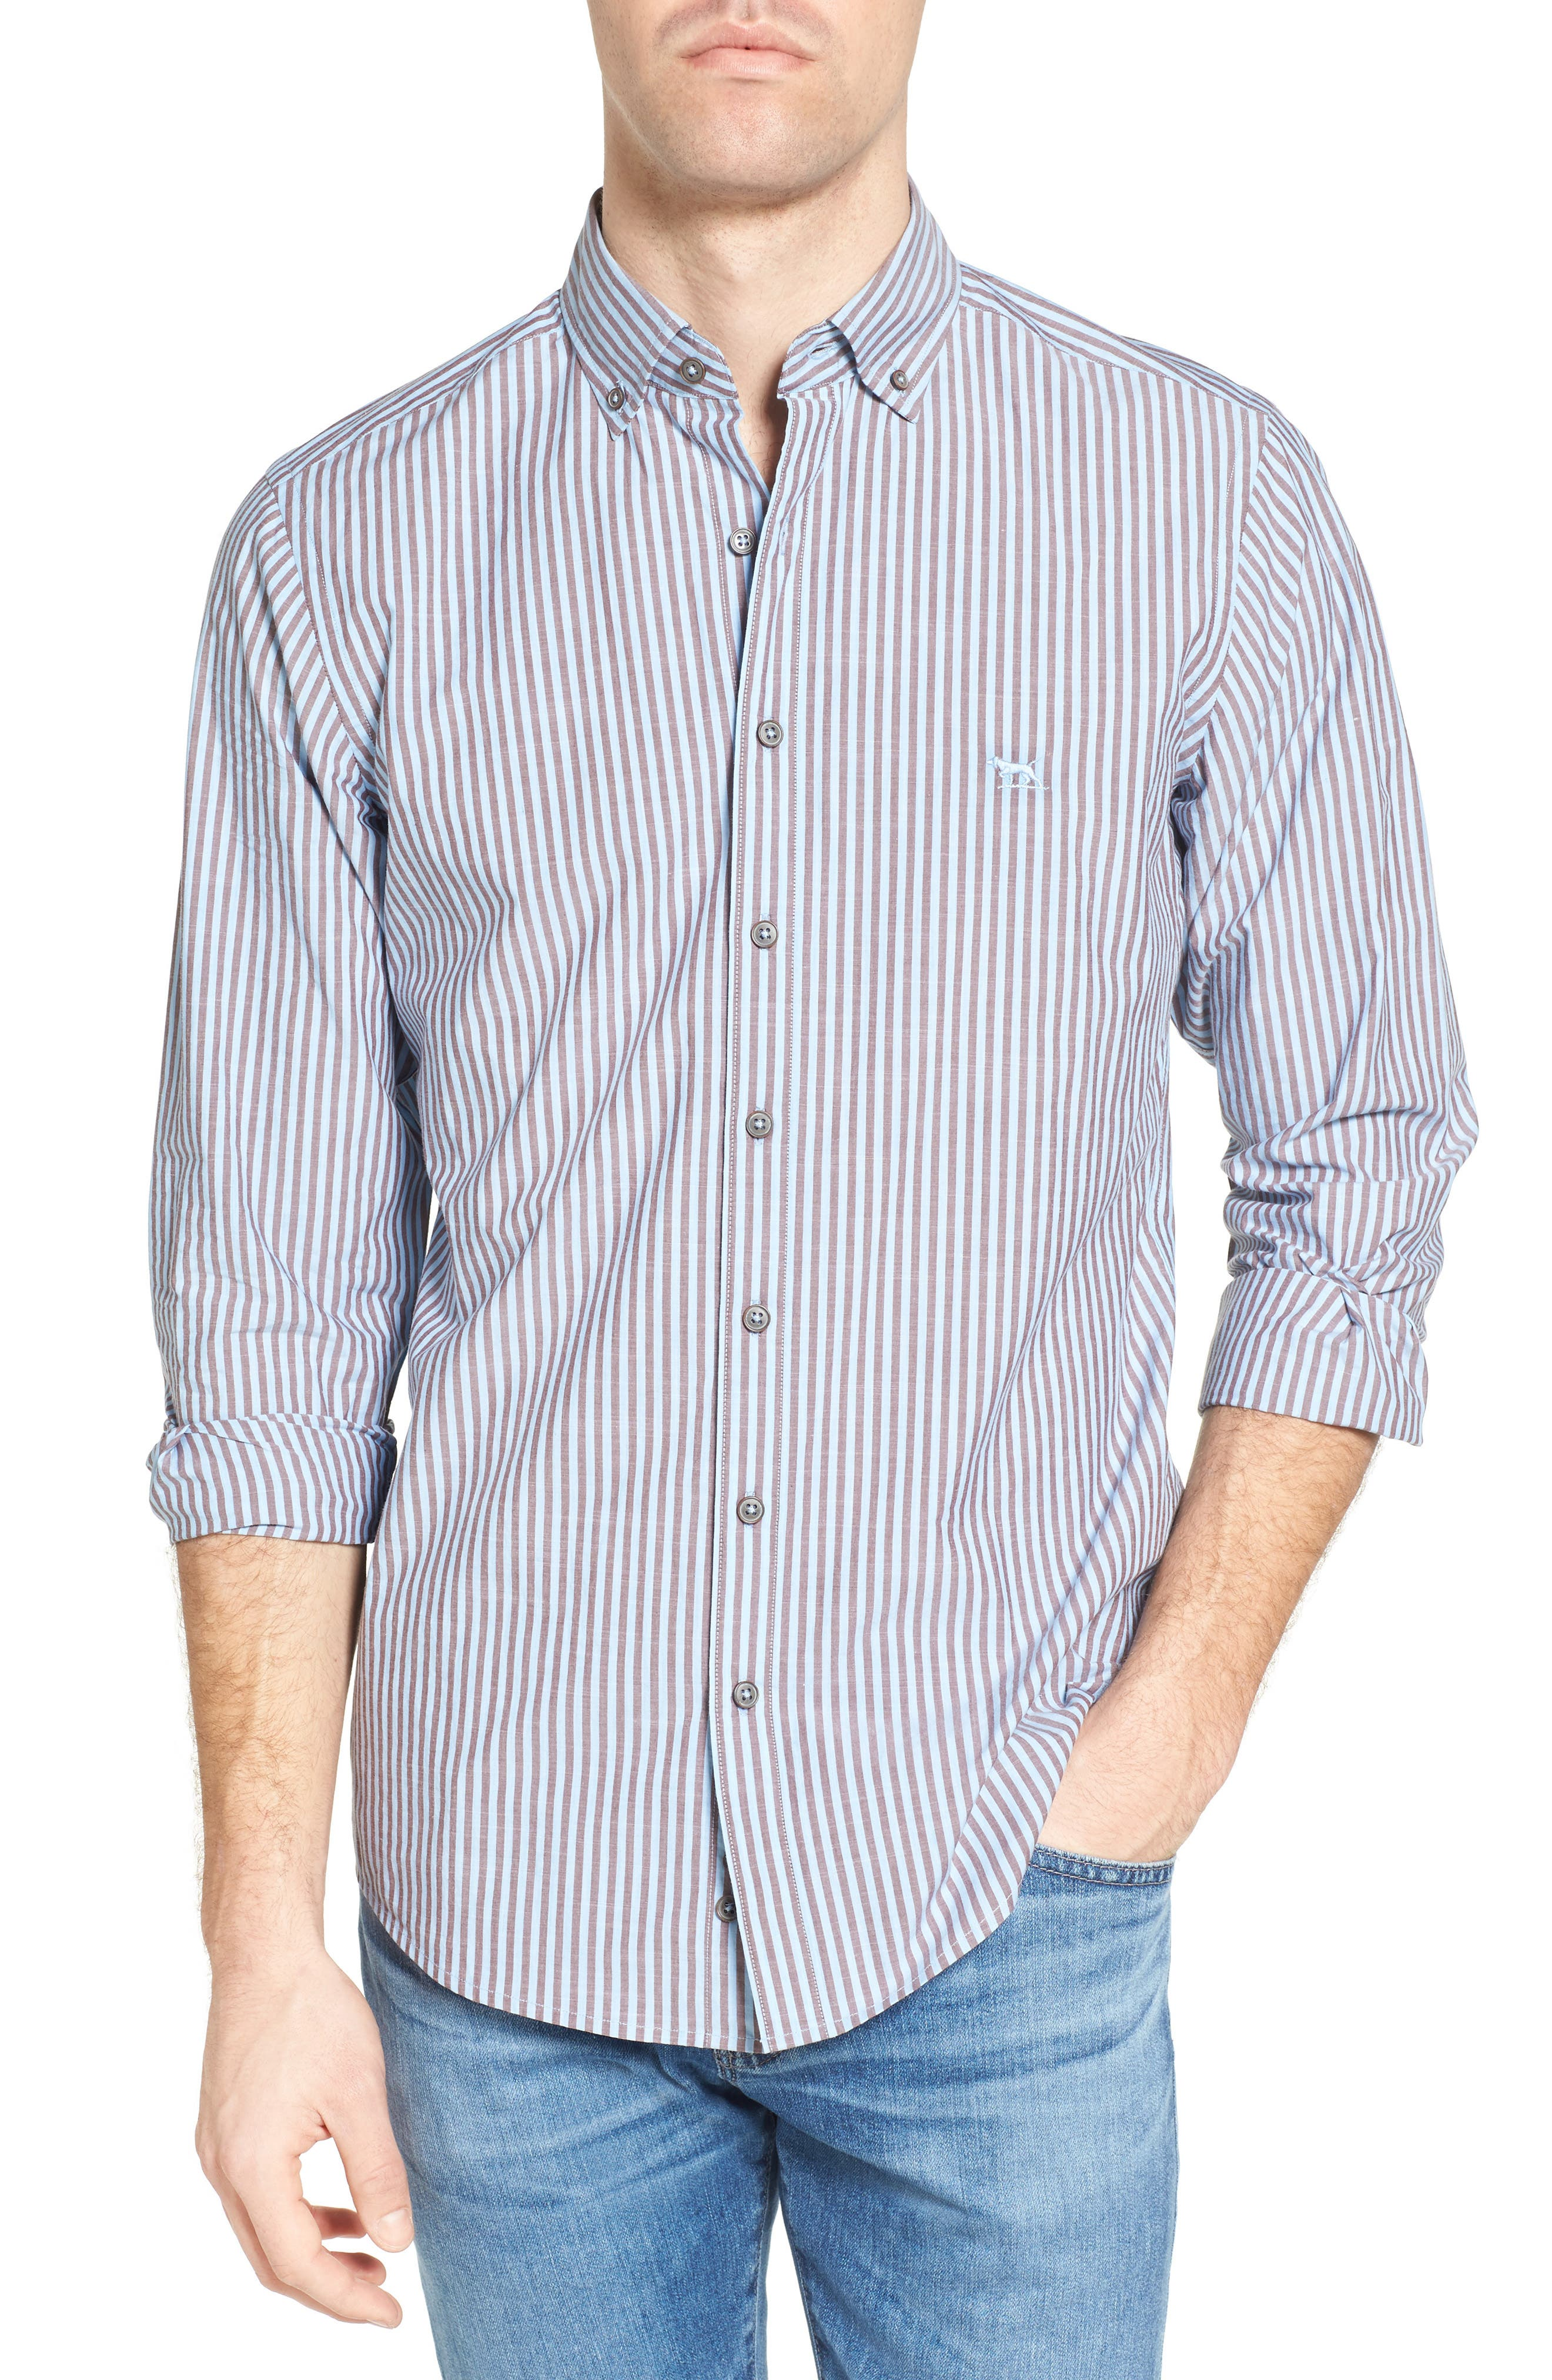 Fitzroy Stripe Sport Shirt,                         Main,                         color, Sky